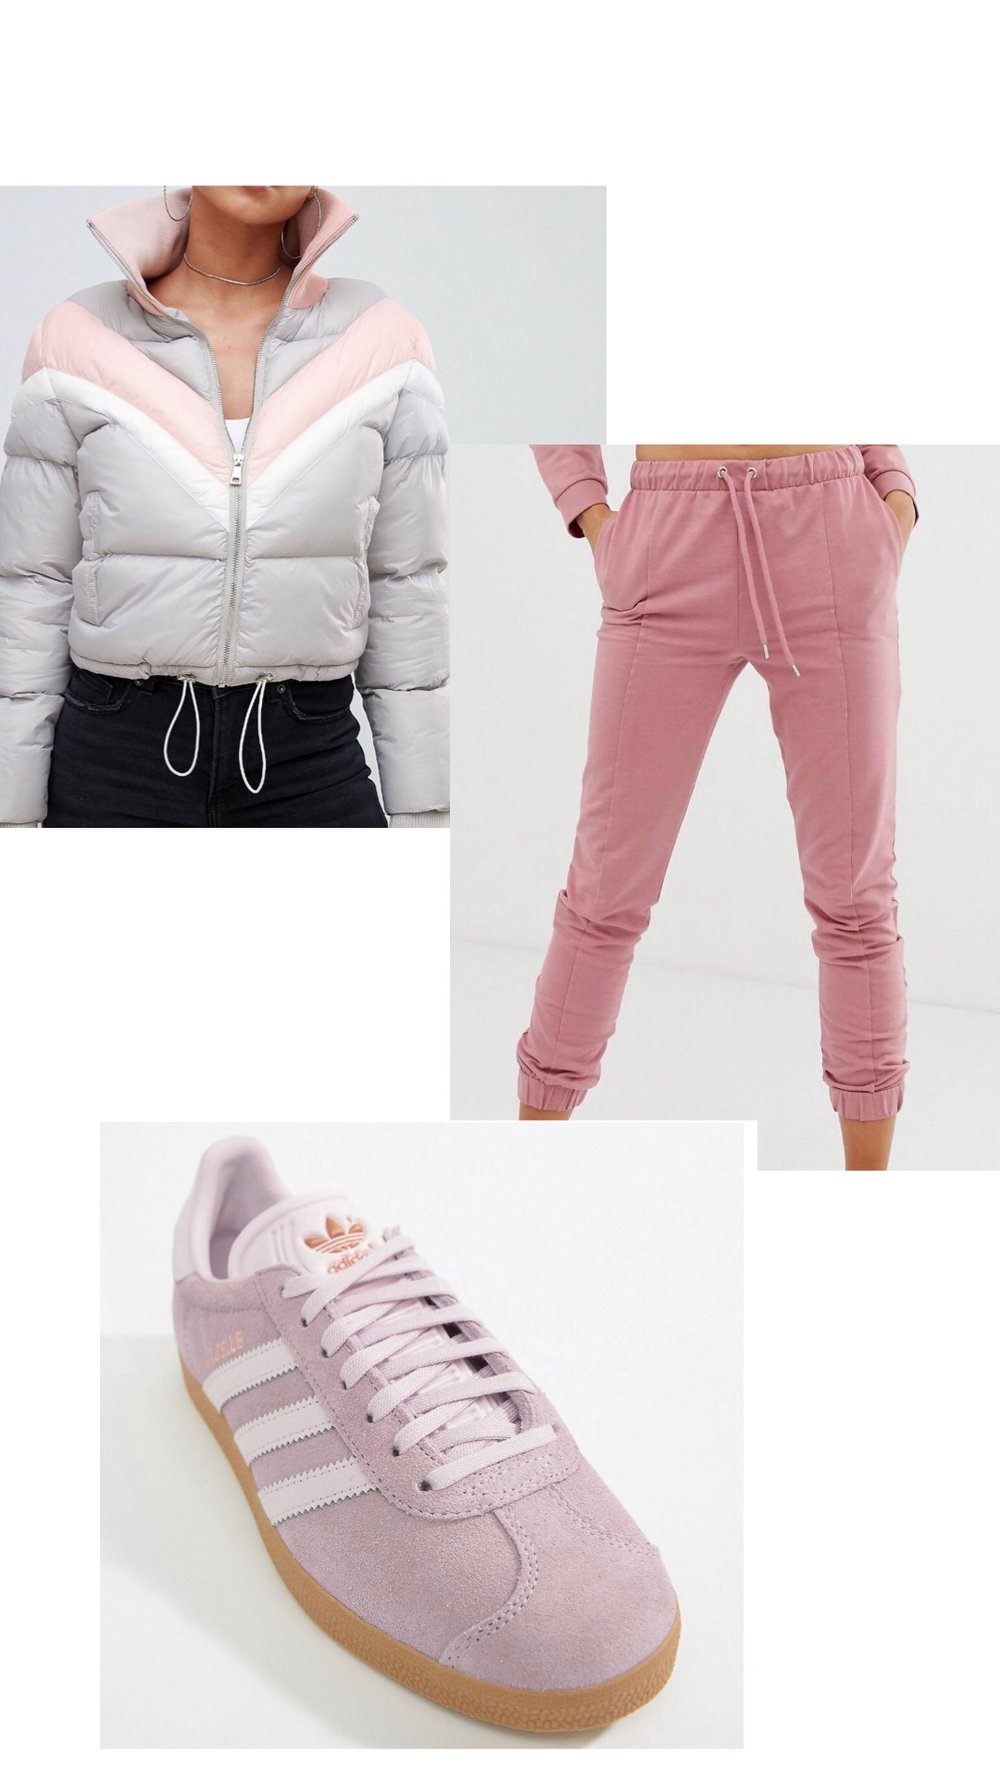 Sport chic for winter.jpg